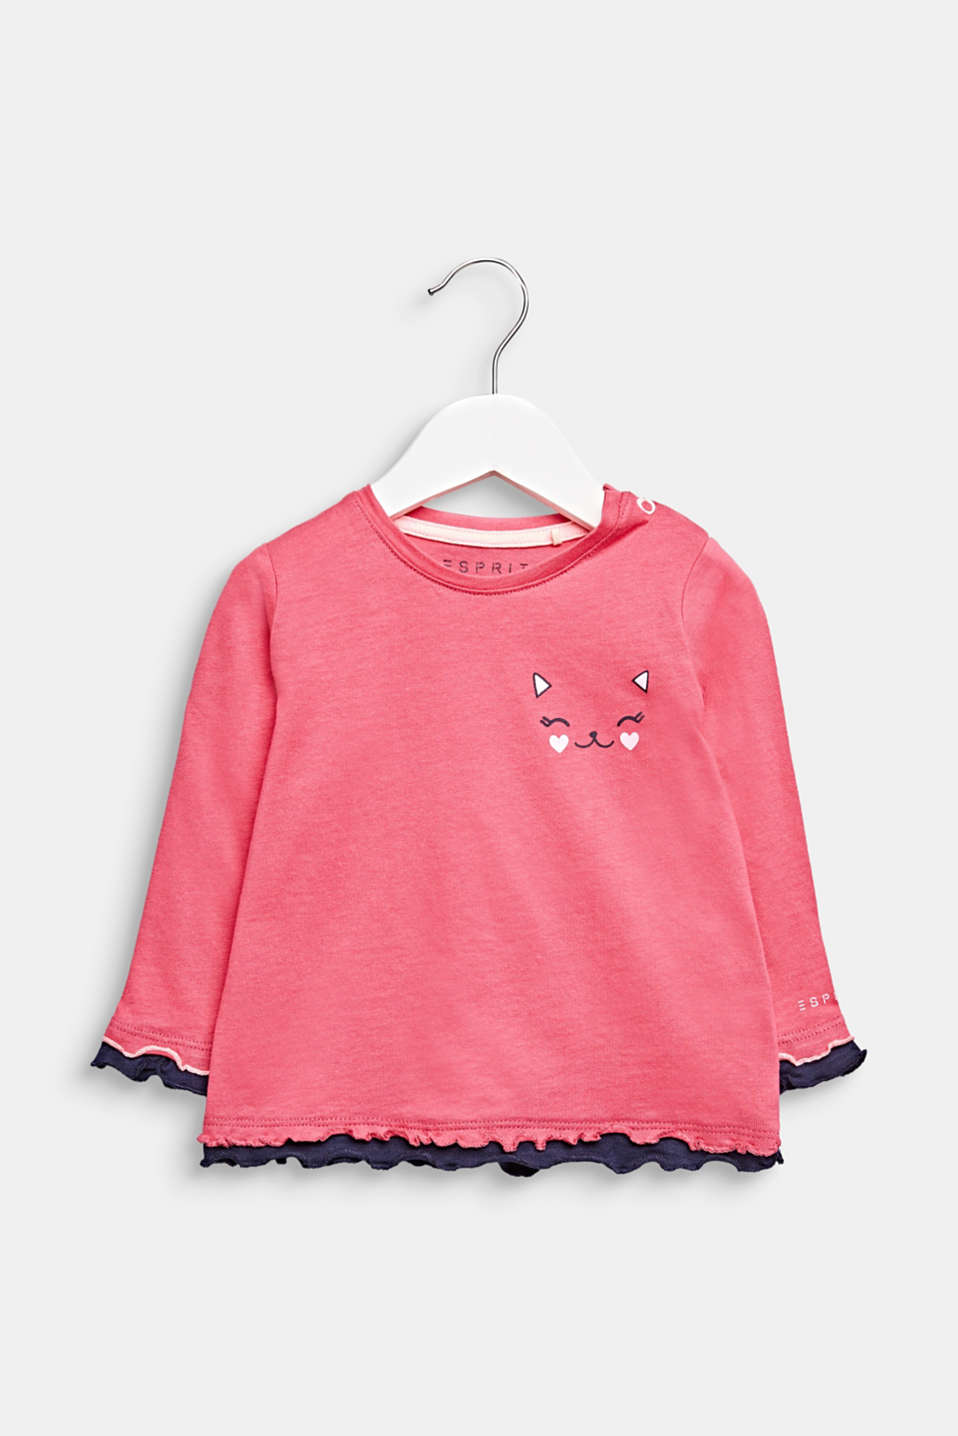 Frilled long sleeve top with a cat print, cotton, LCCANDY PINK, detail image number 0